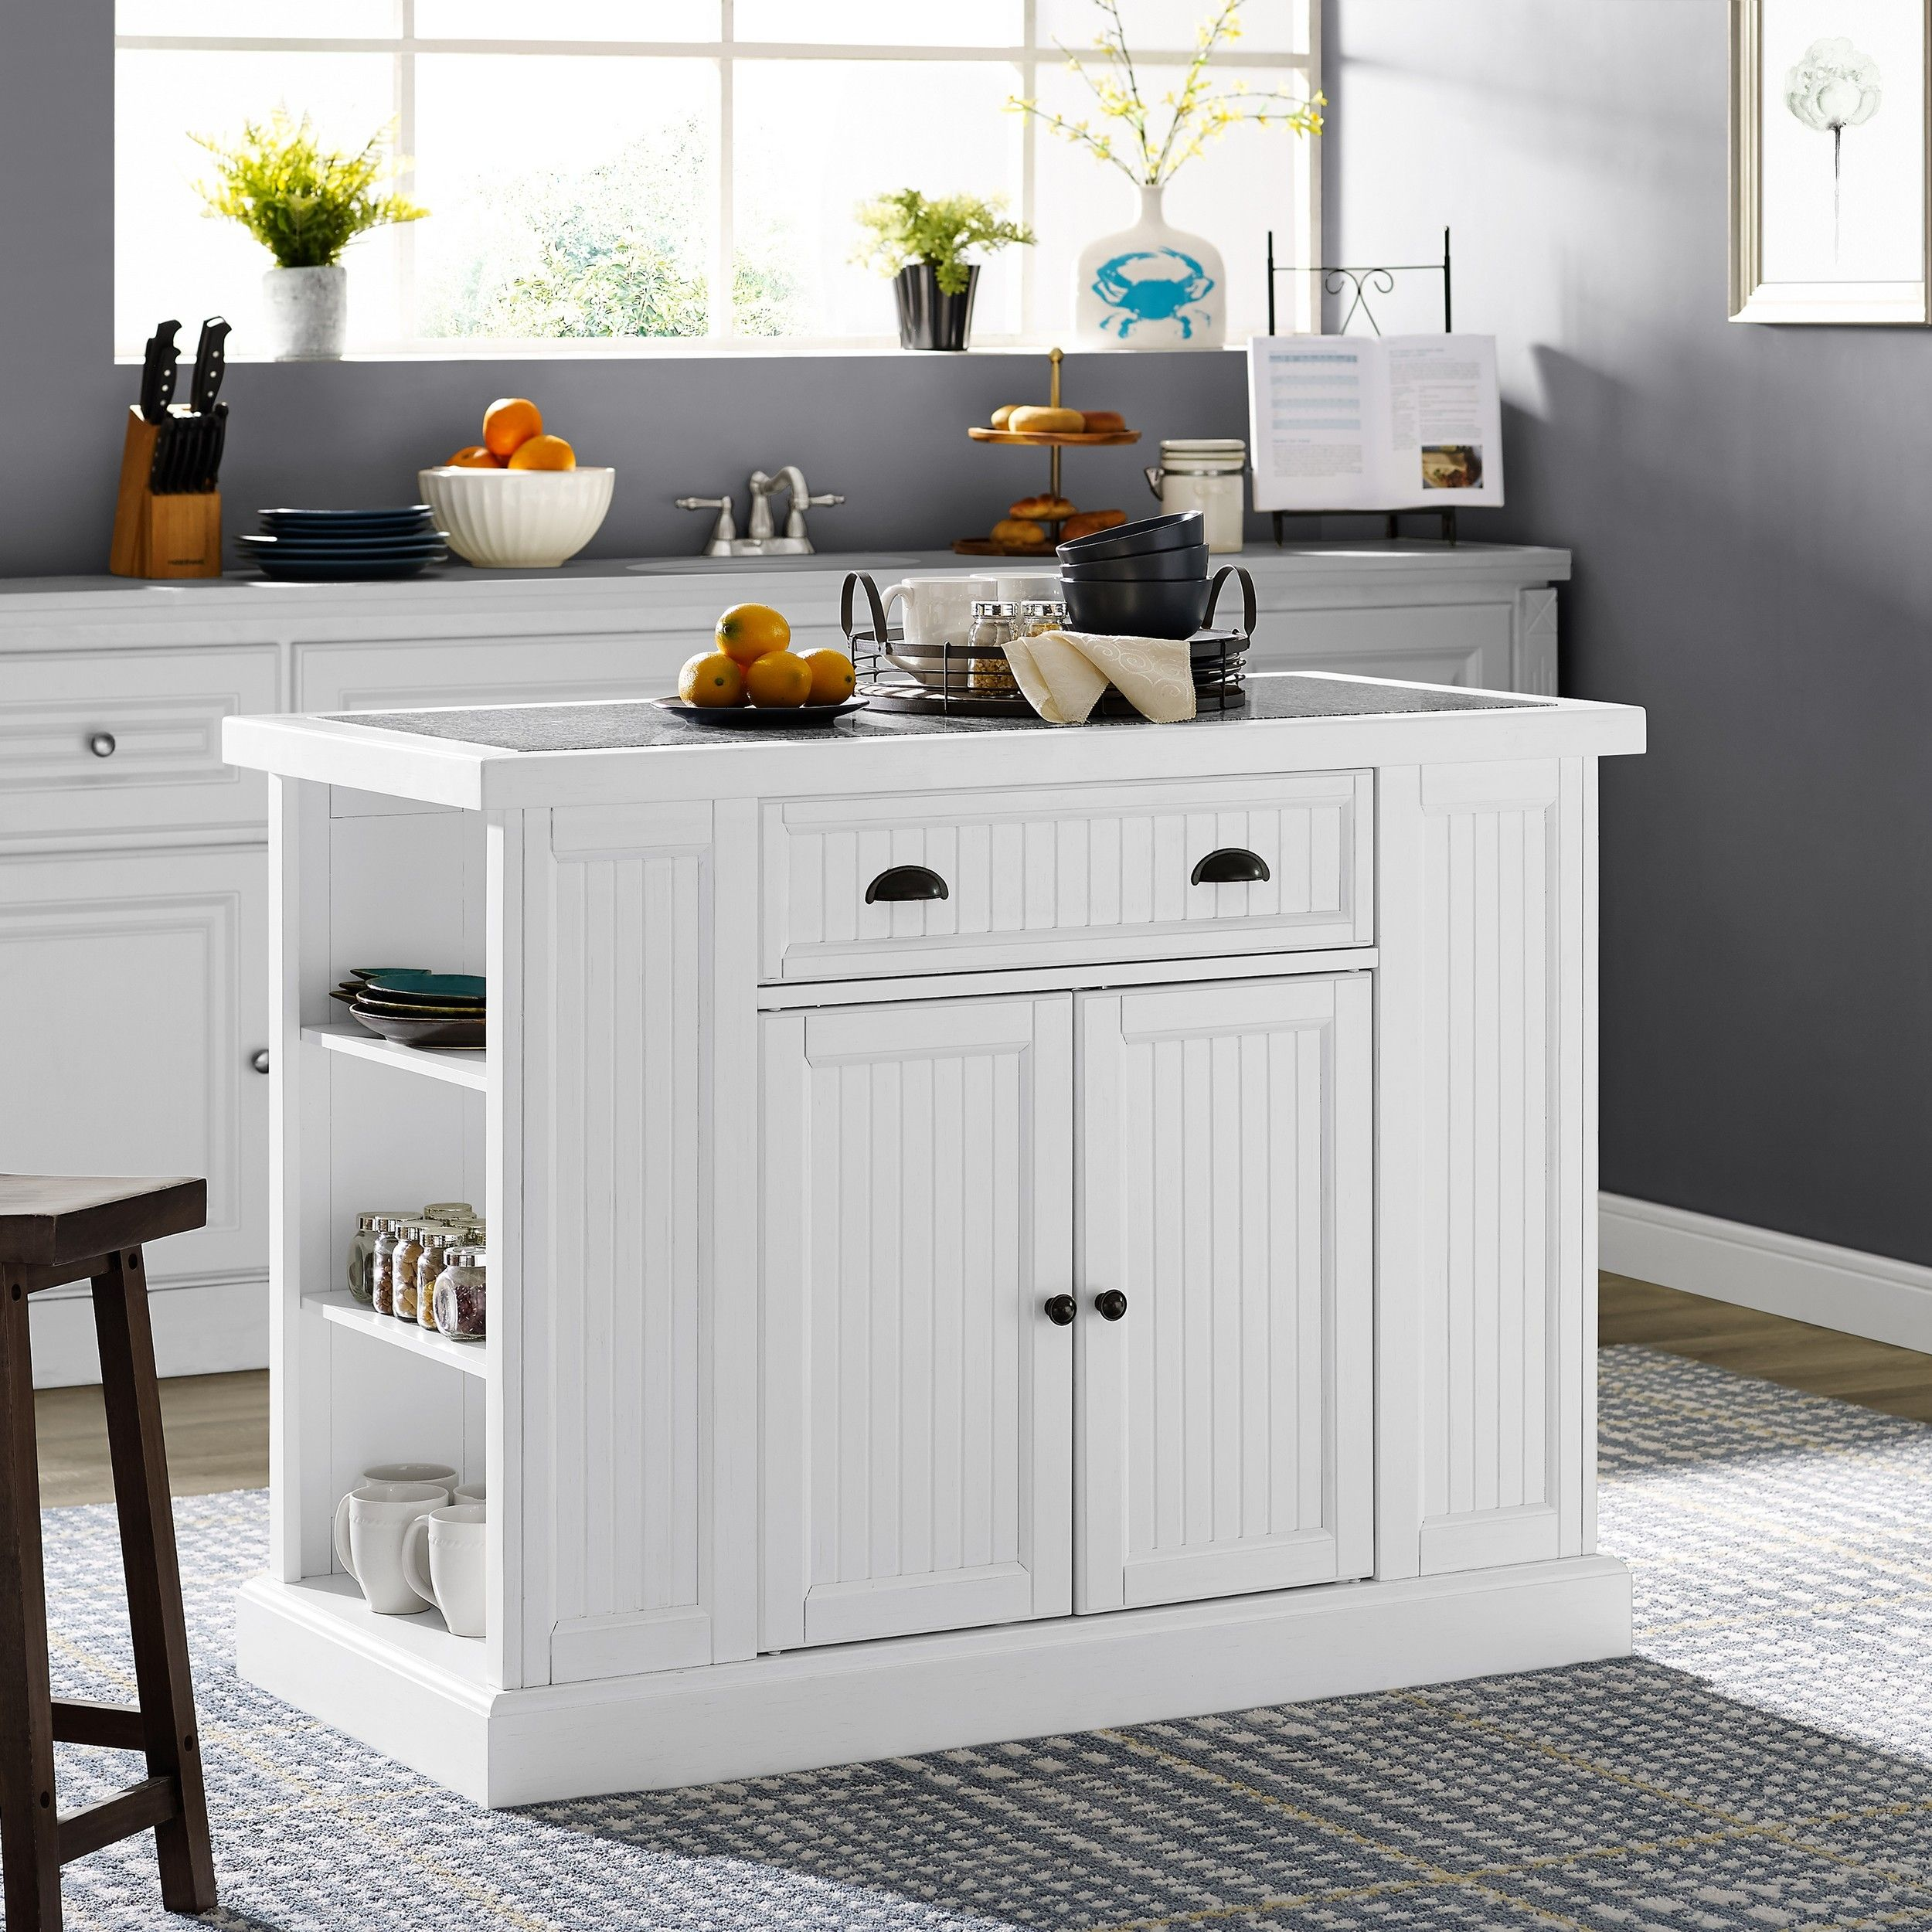 Lowest Price On Crosley Seaside White Kitchen Island Kf31005 Wh Shop Today Kitchen Island With Granite Top White Kitchen Island Seaside Kitchen